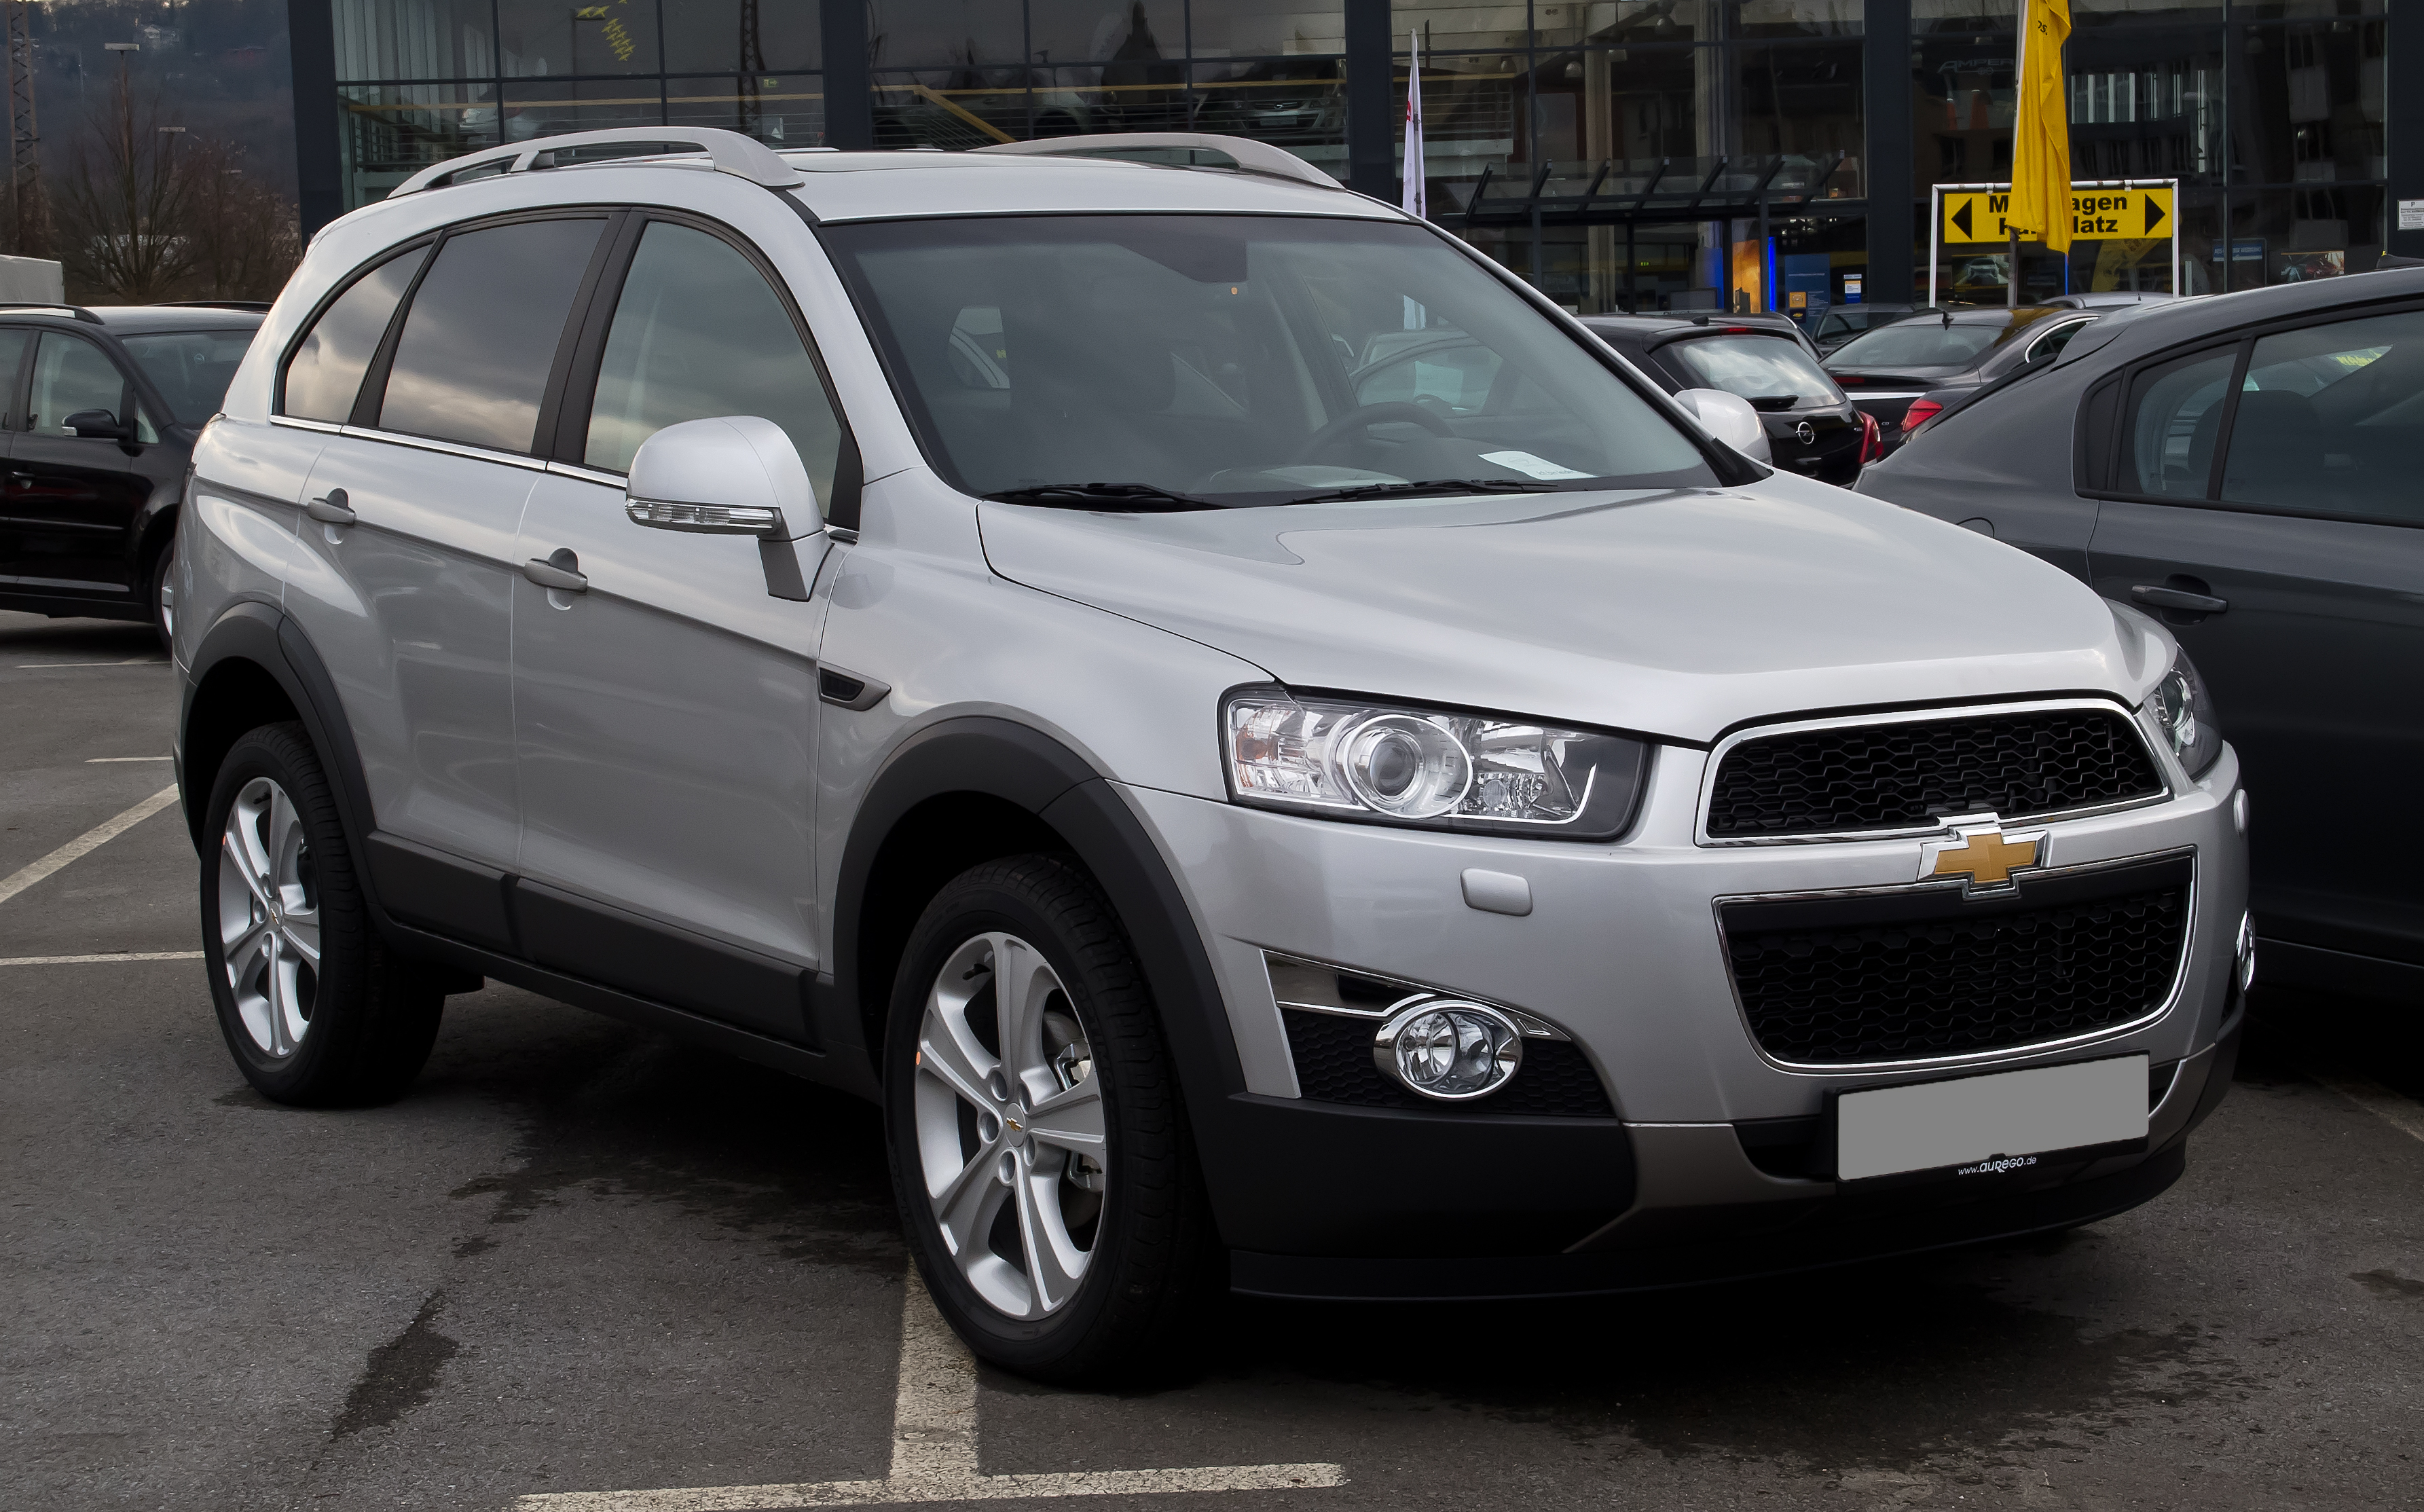 Pictures of chevrolet captiva #2